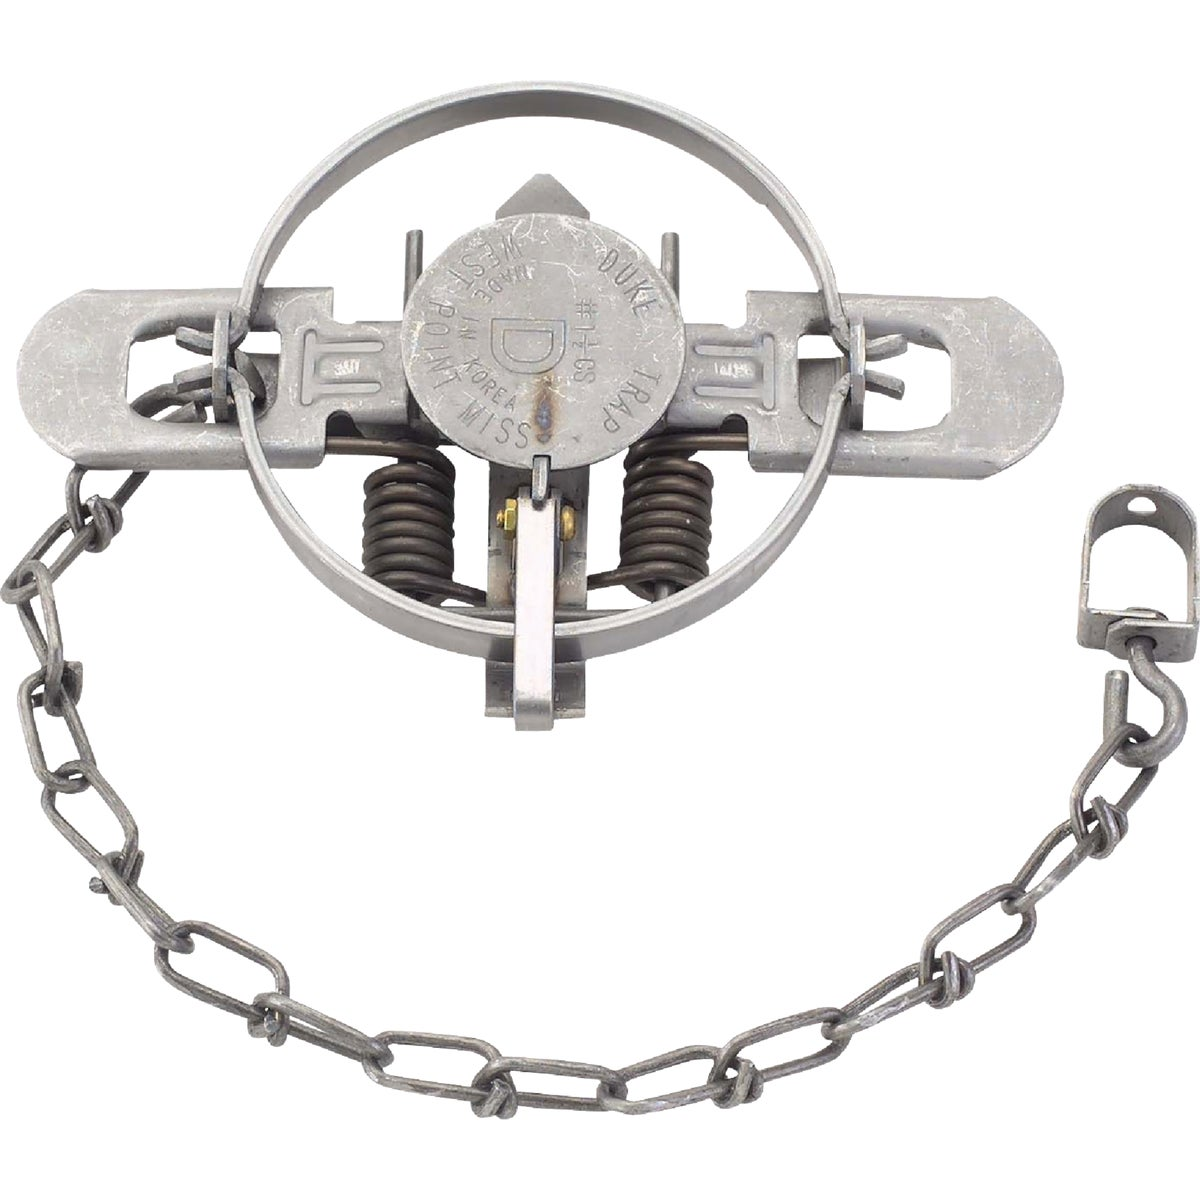 #1 1/2 COIL SPRING TRAP - 0470 by Duke Company